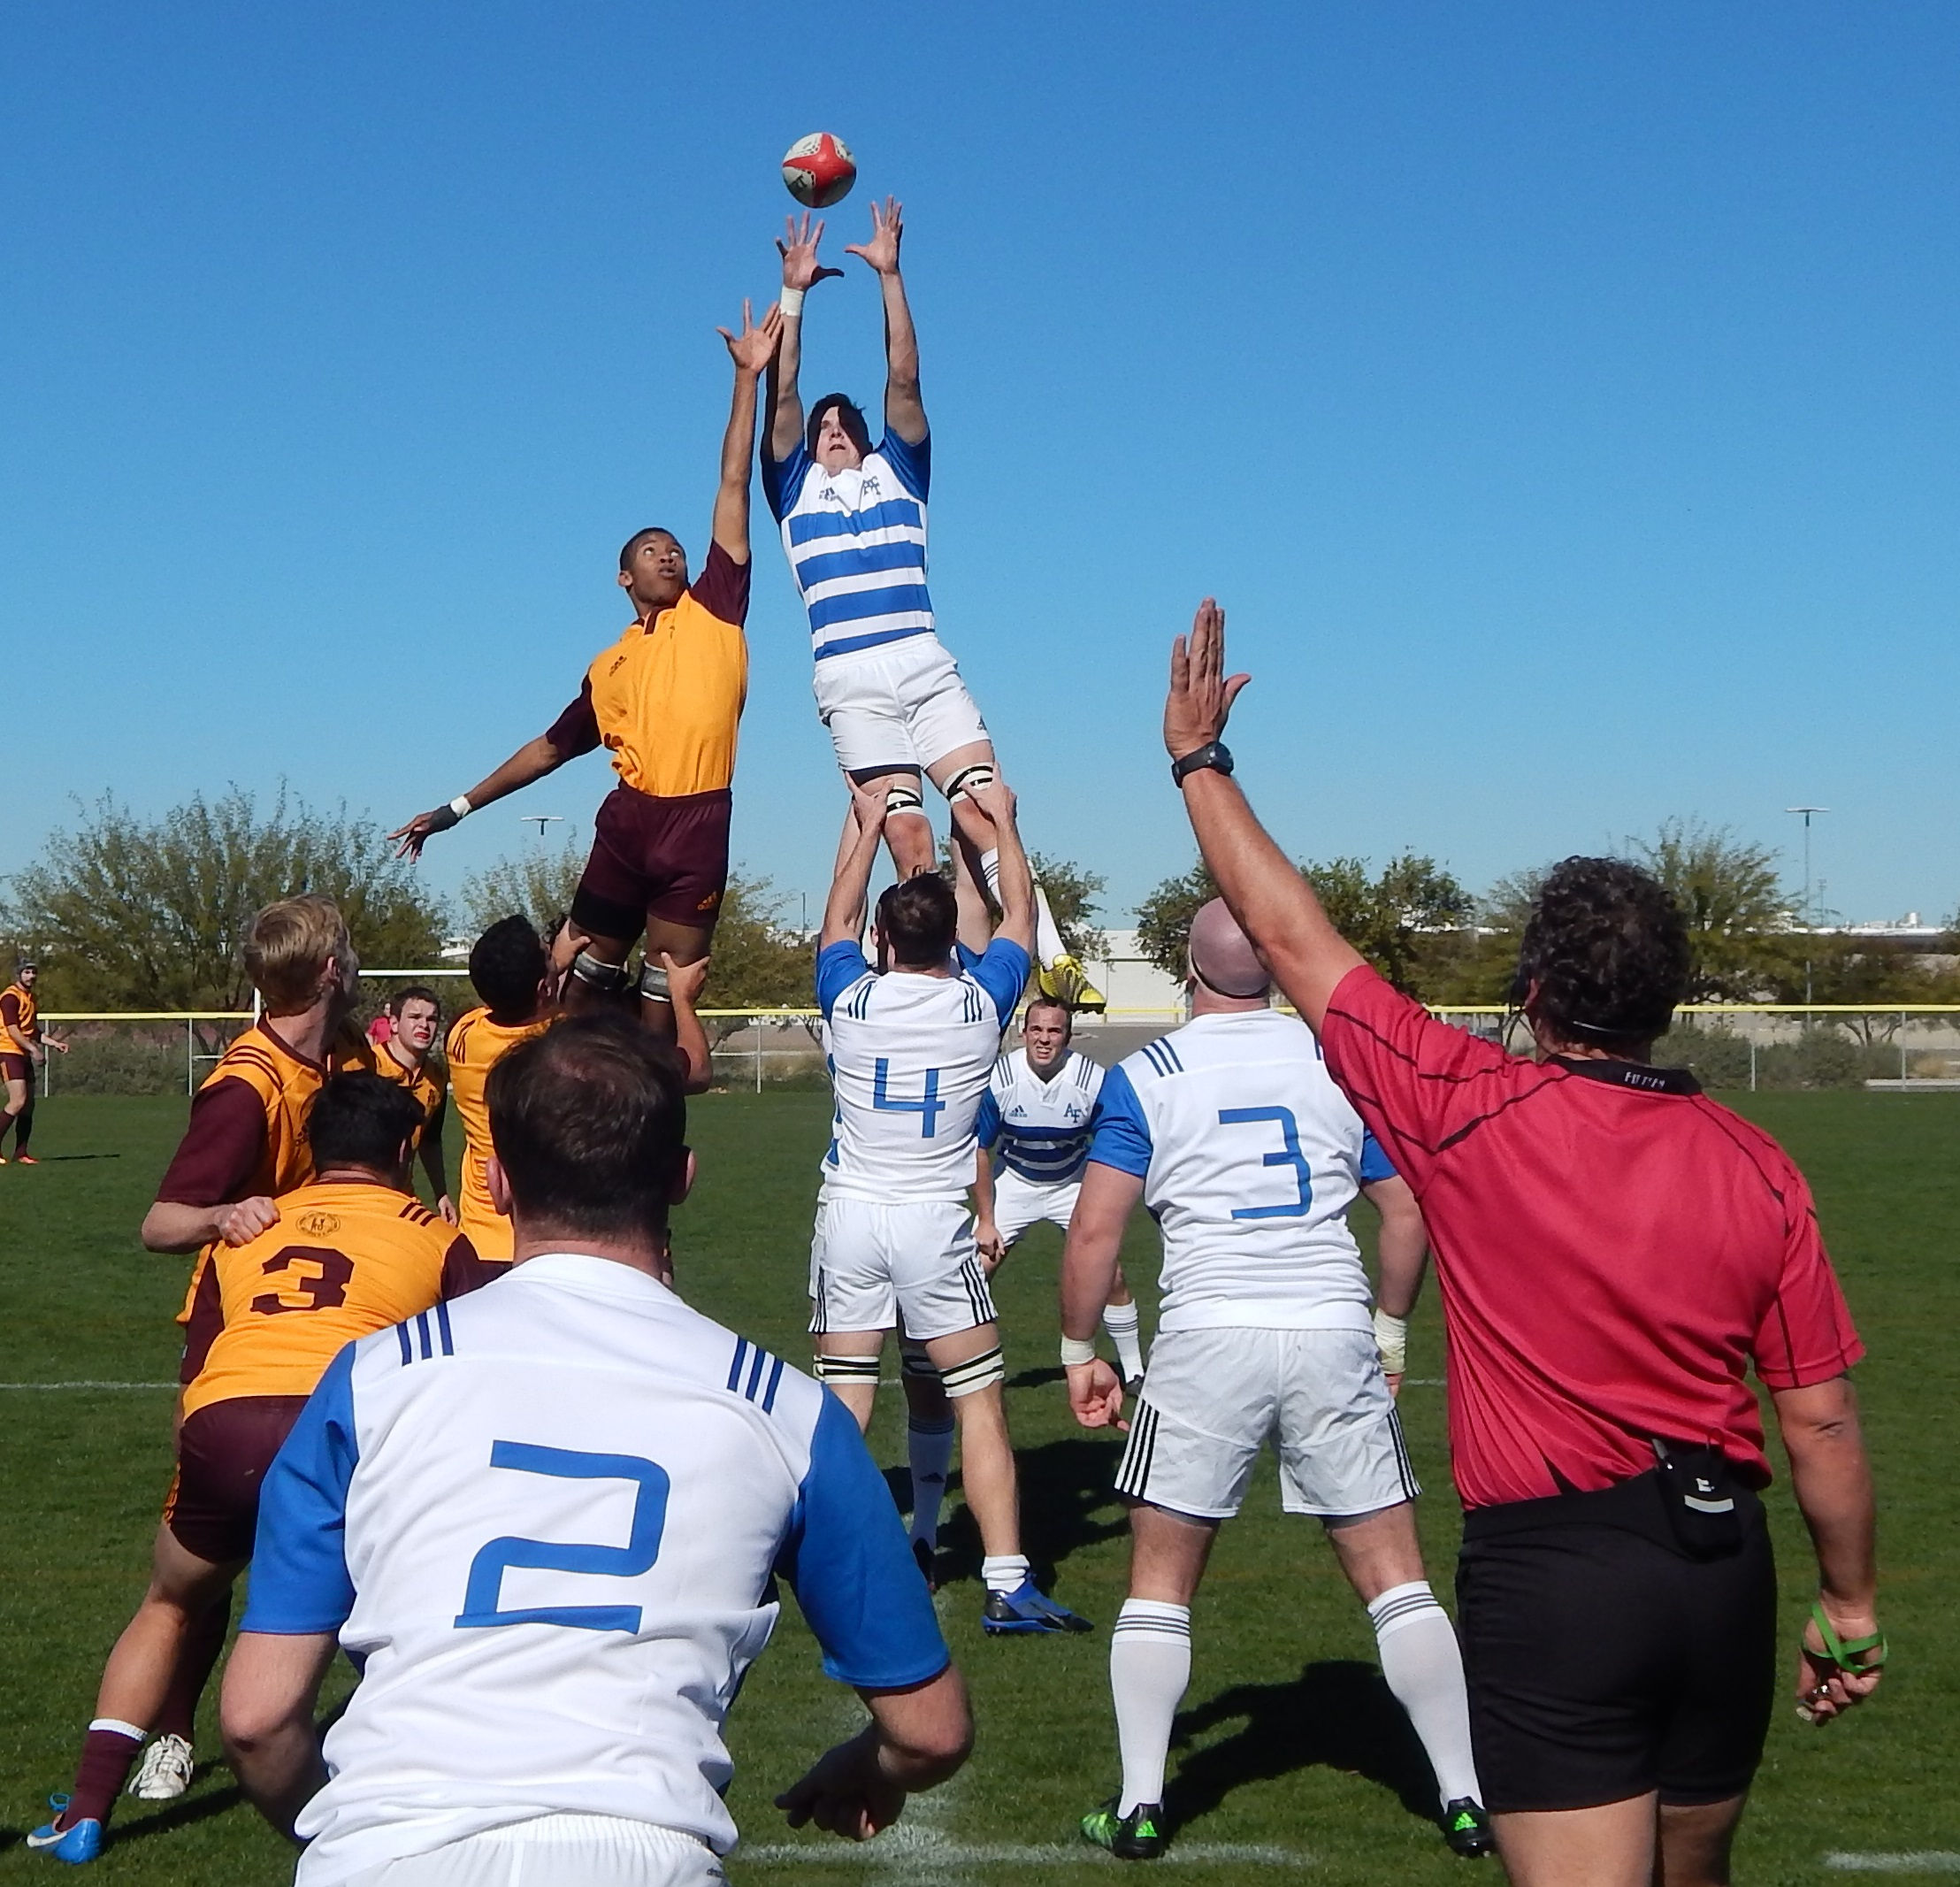 Great line-out throw from Brady Miner